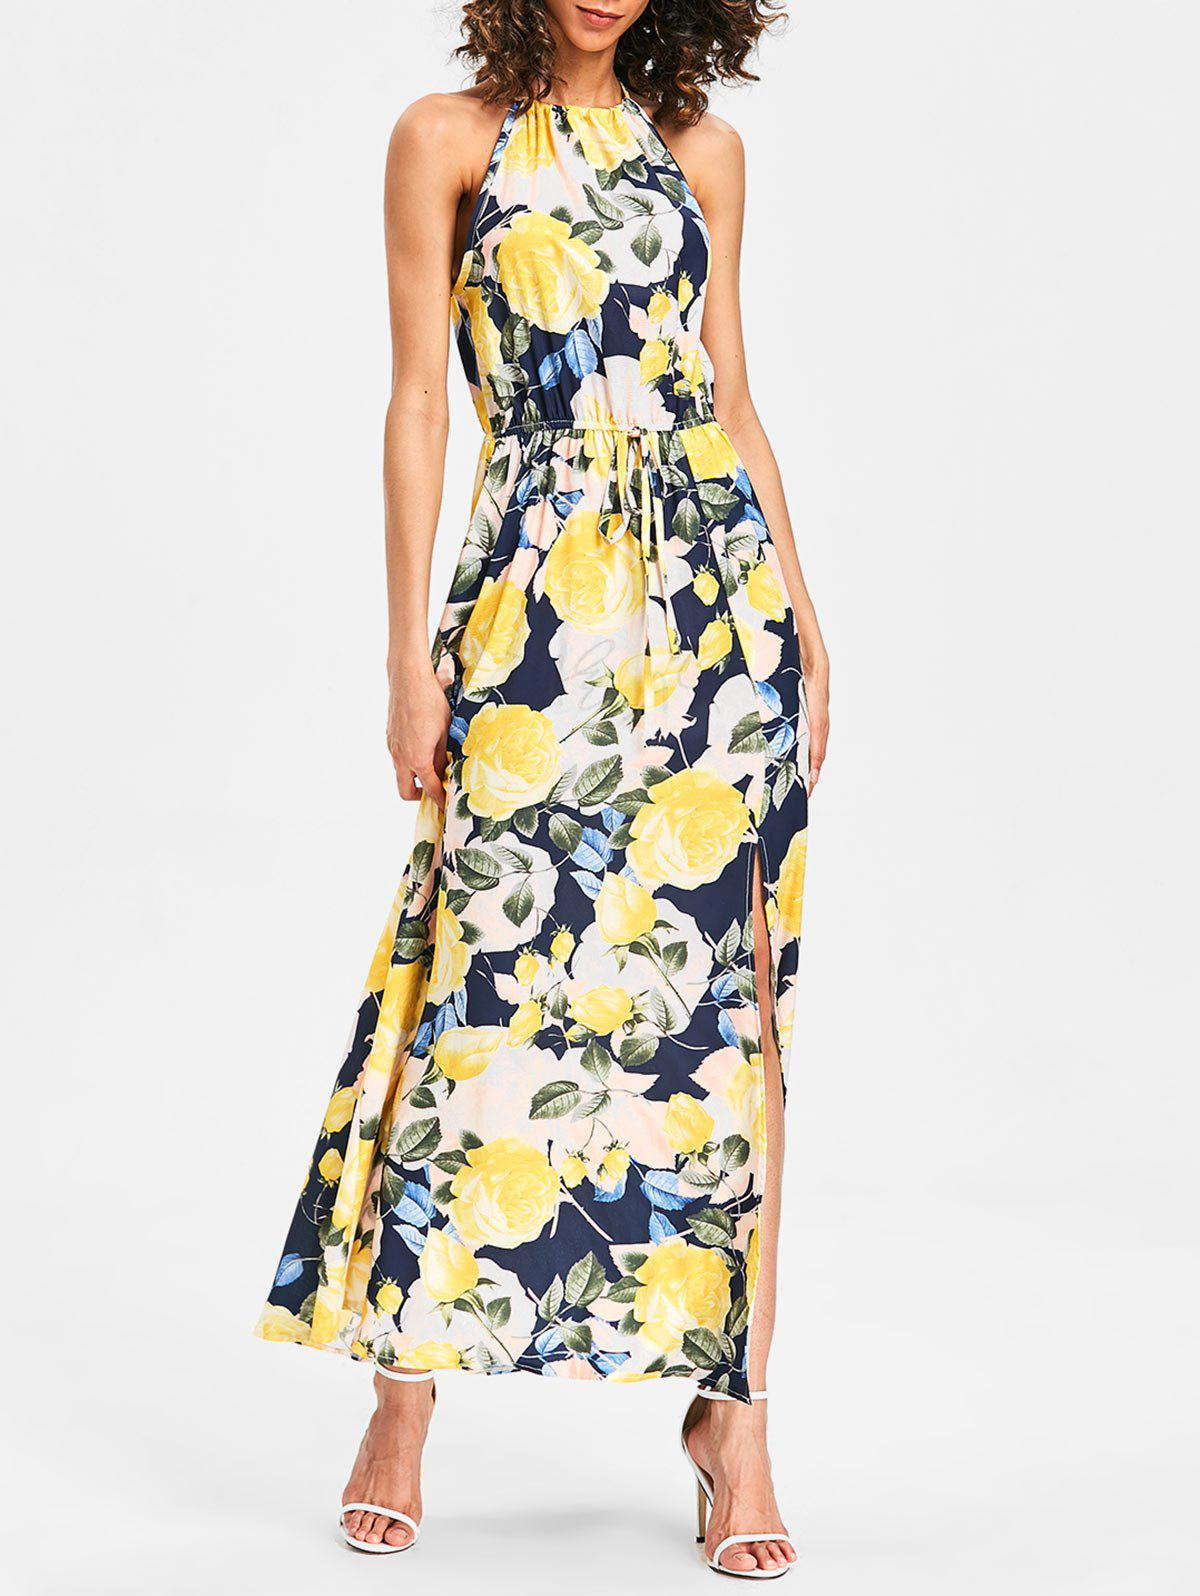 Drawstring Waist Front Slit Floral Longline Dress - multicolor S